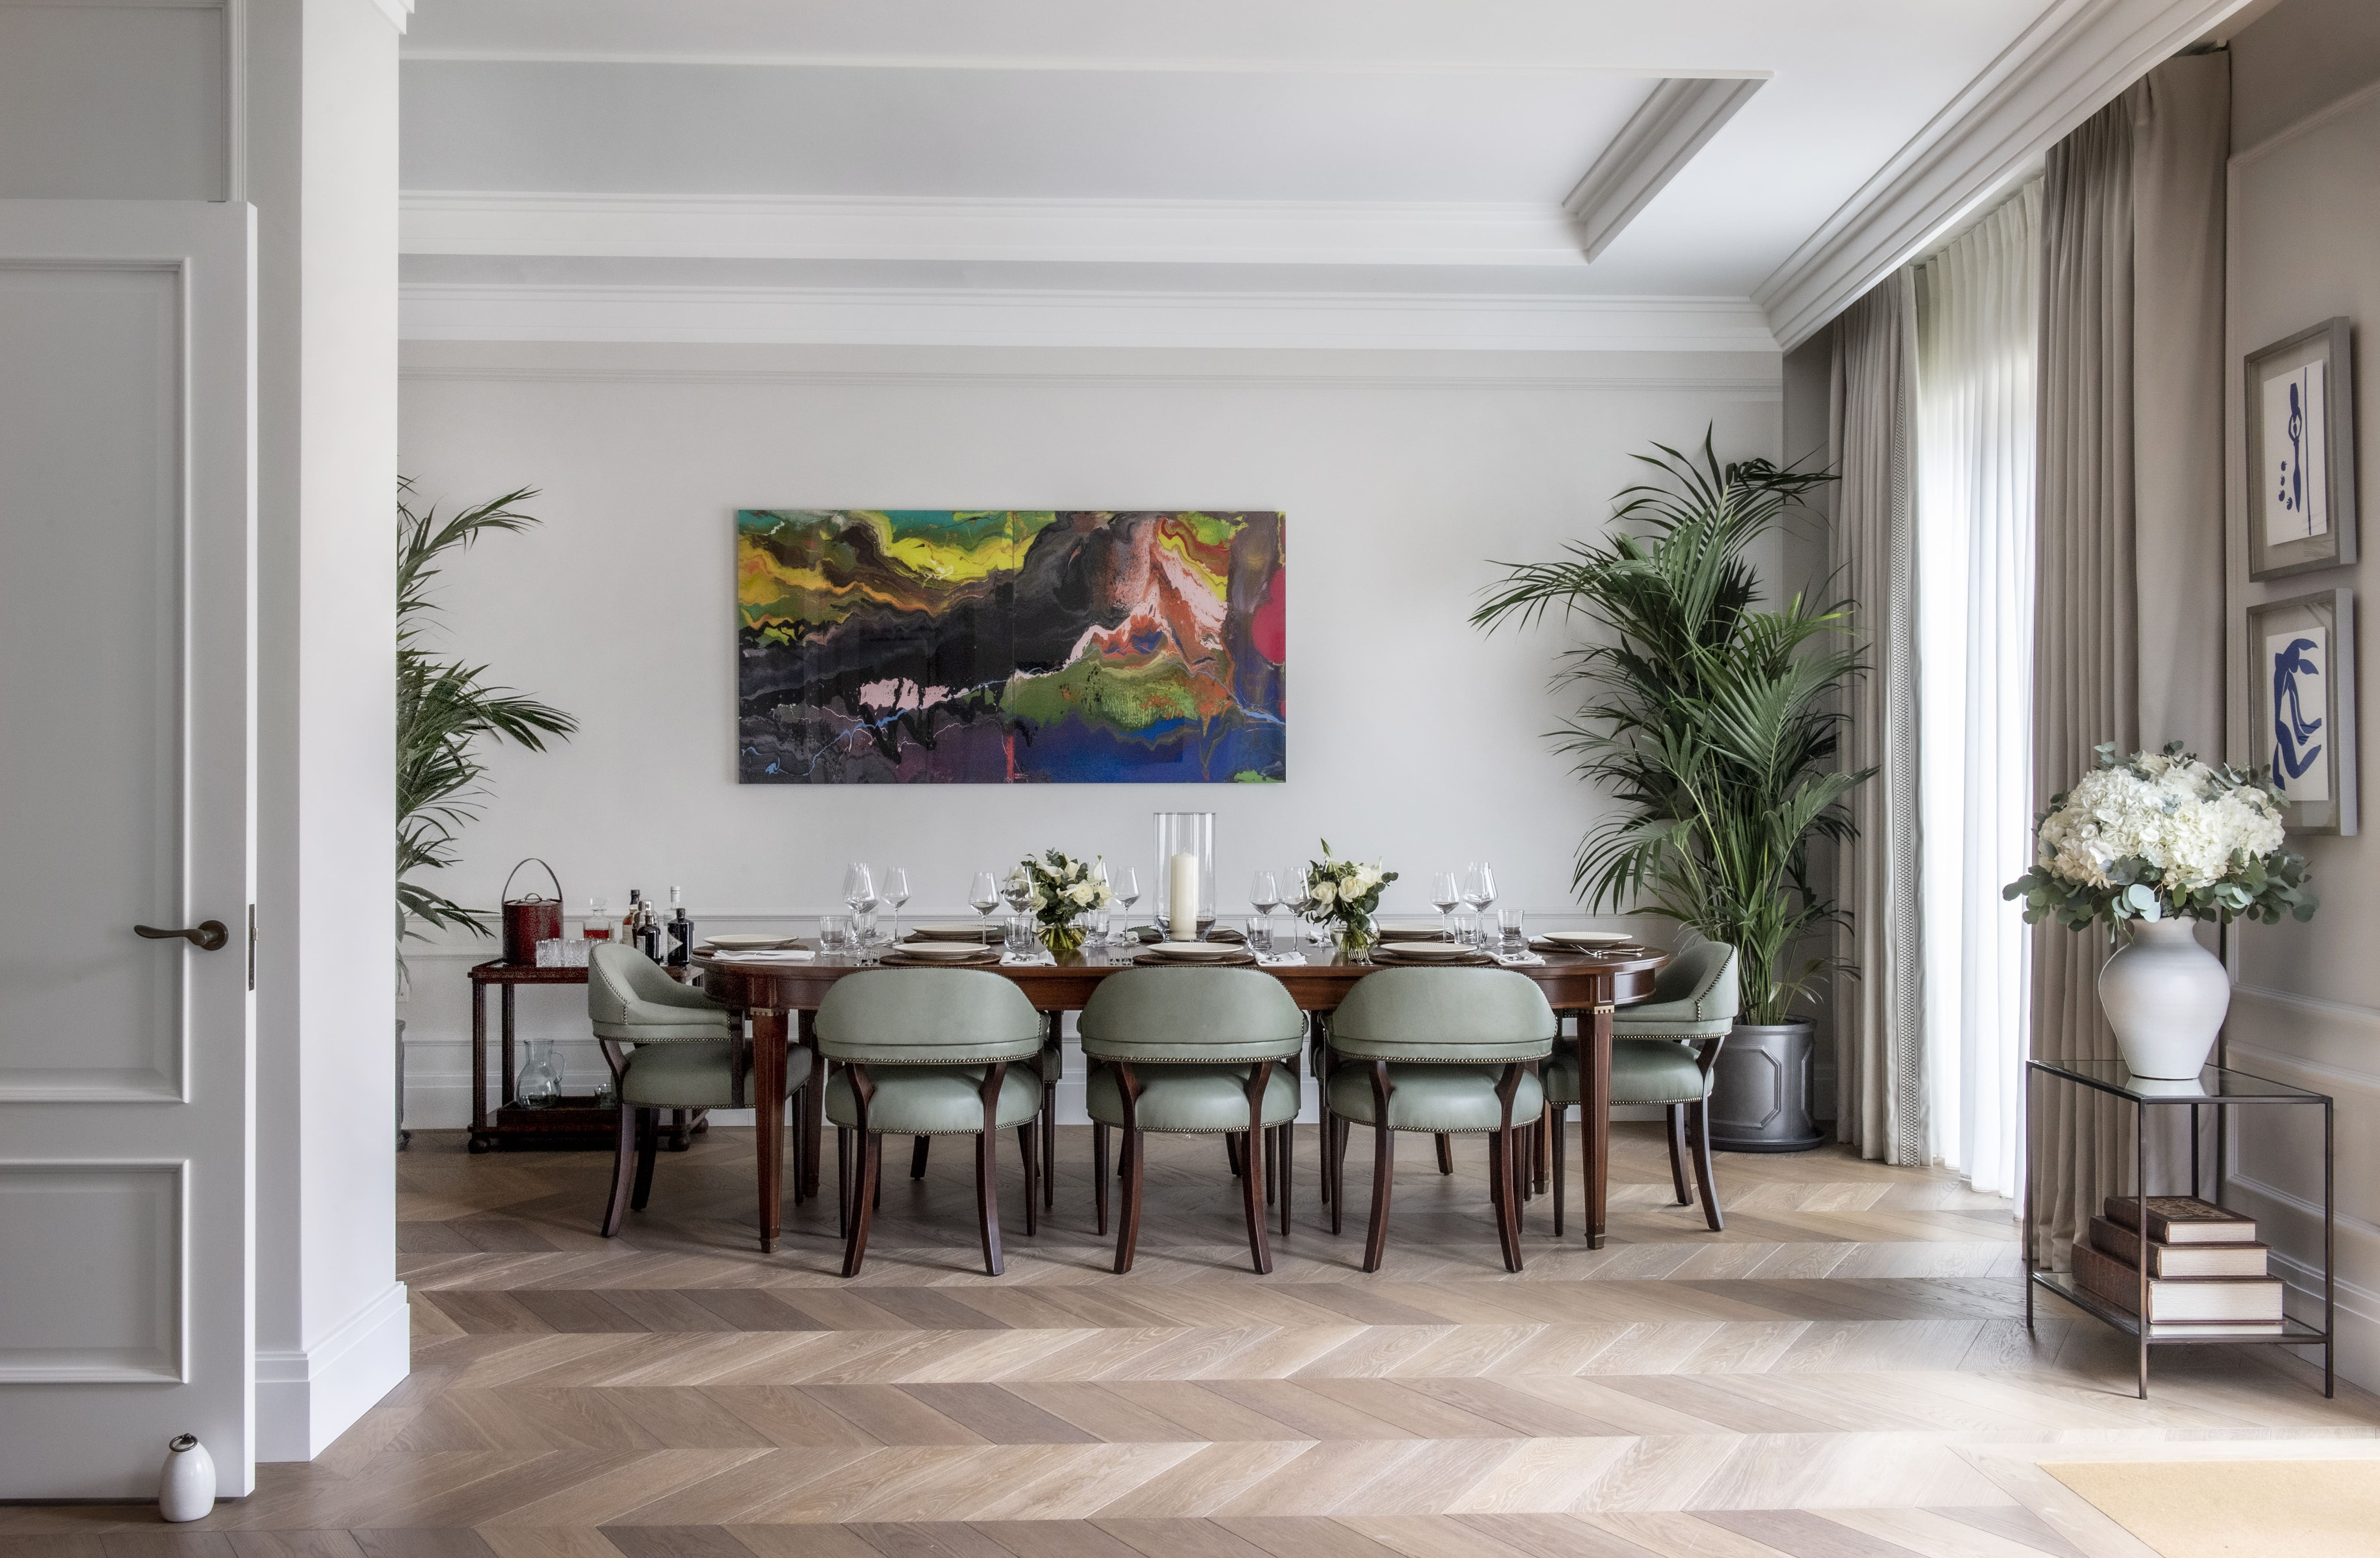 Auriens Show Apartment - dining table and artwork